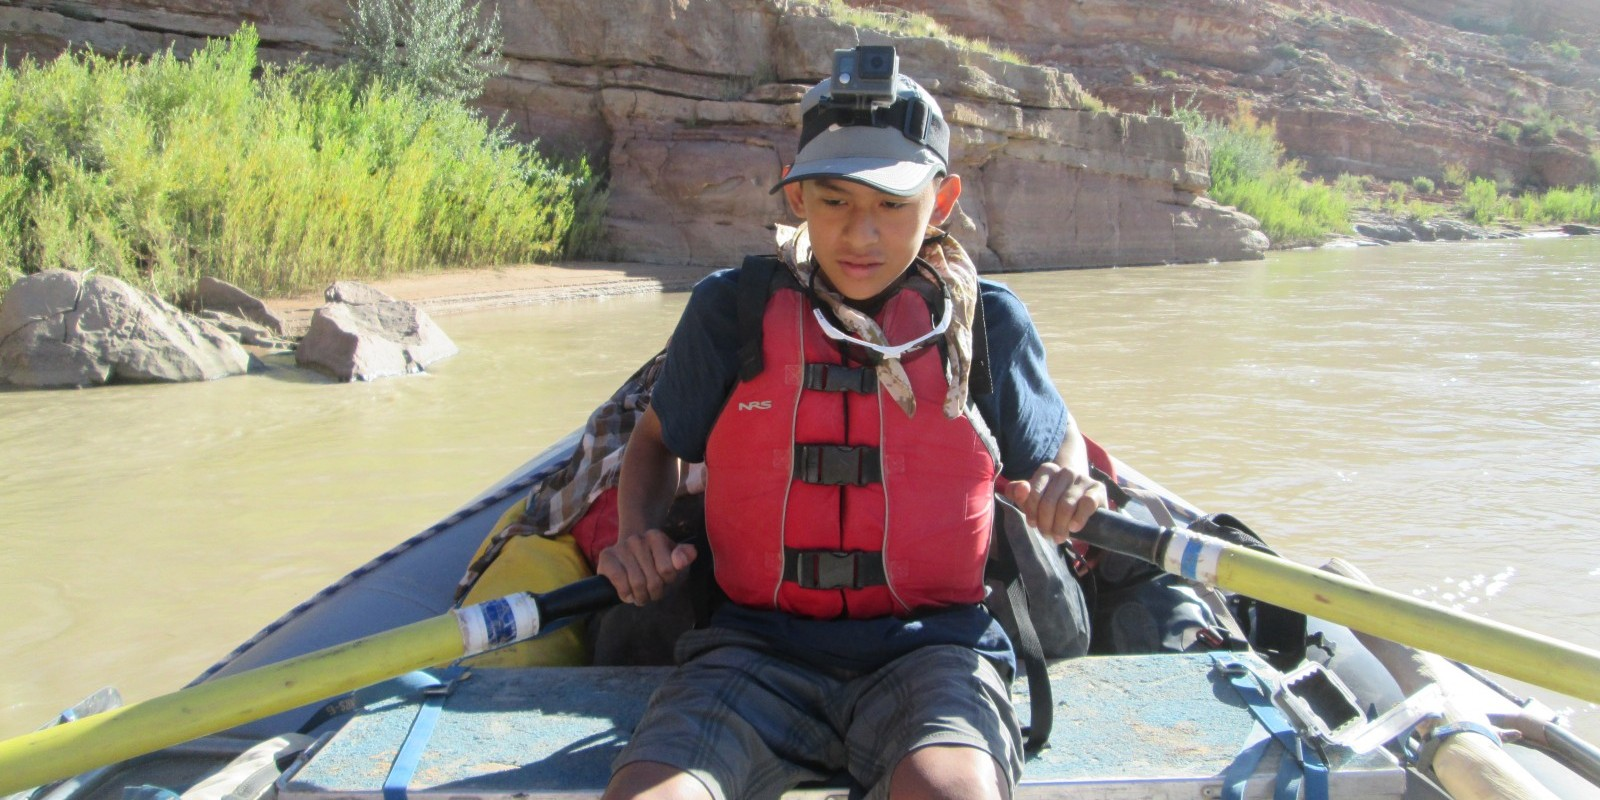 Teen wilderness camp river trip in Utah canyons